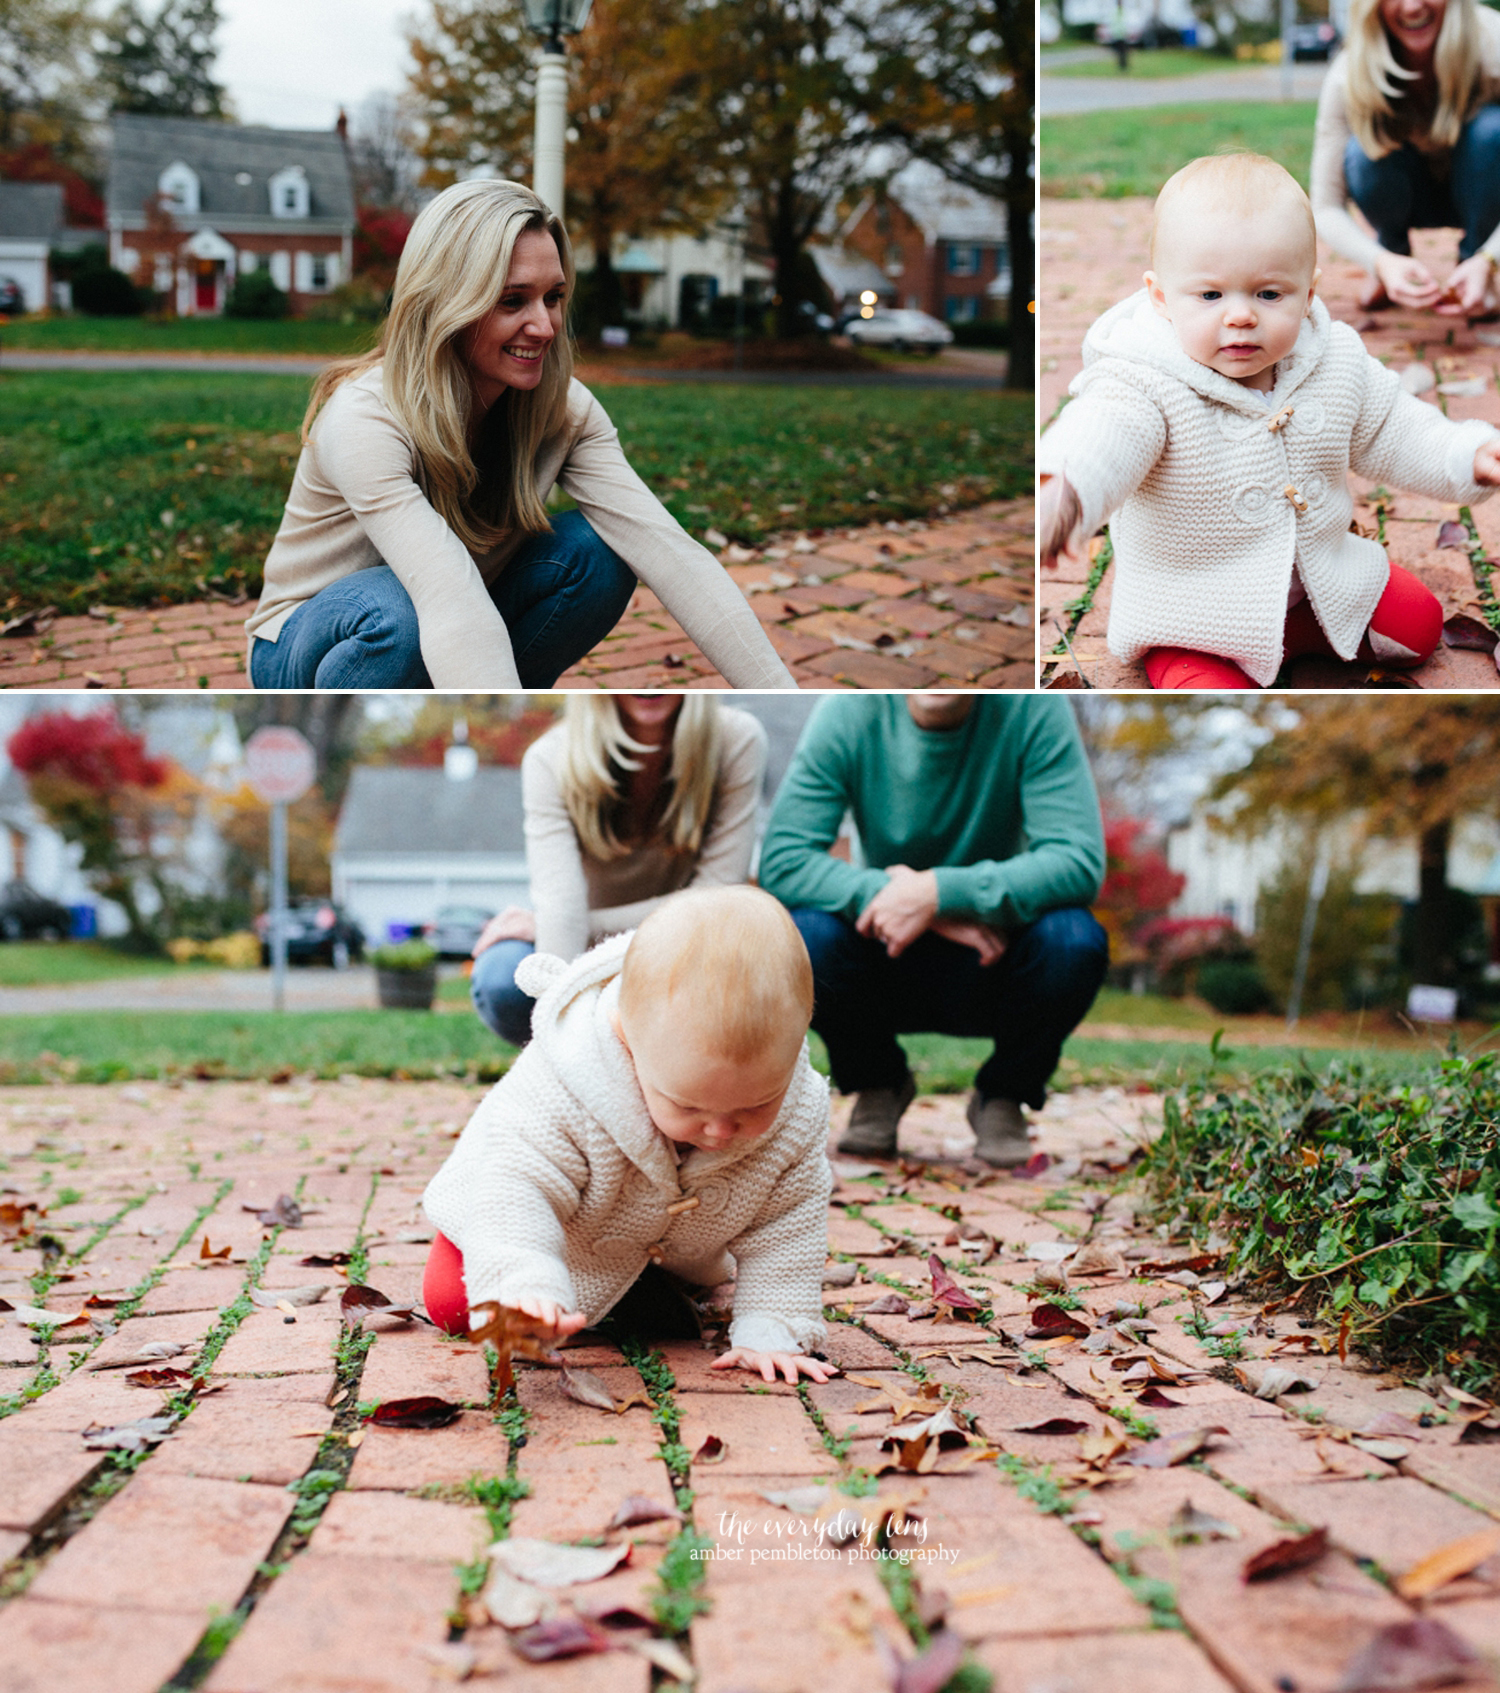 one-year-old-playing-with-leaves.jpg